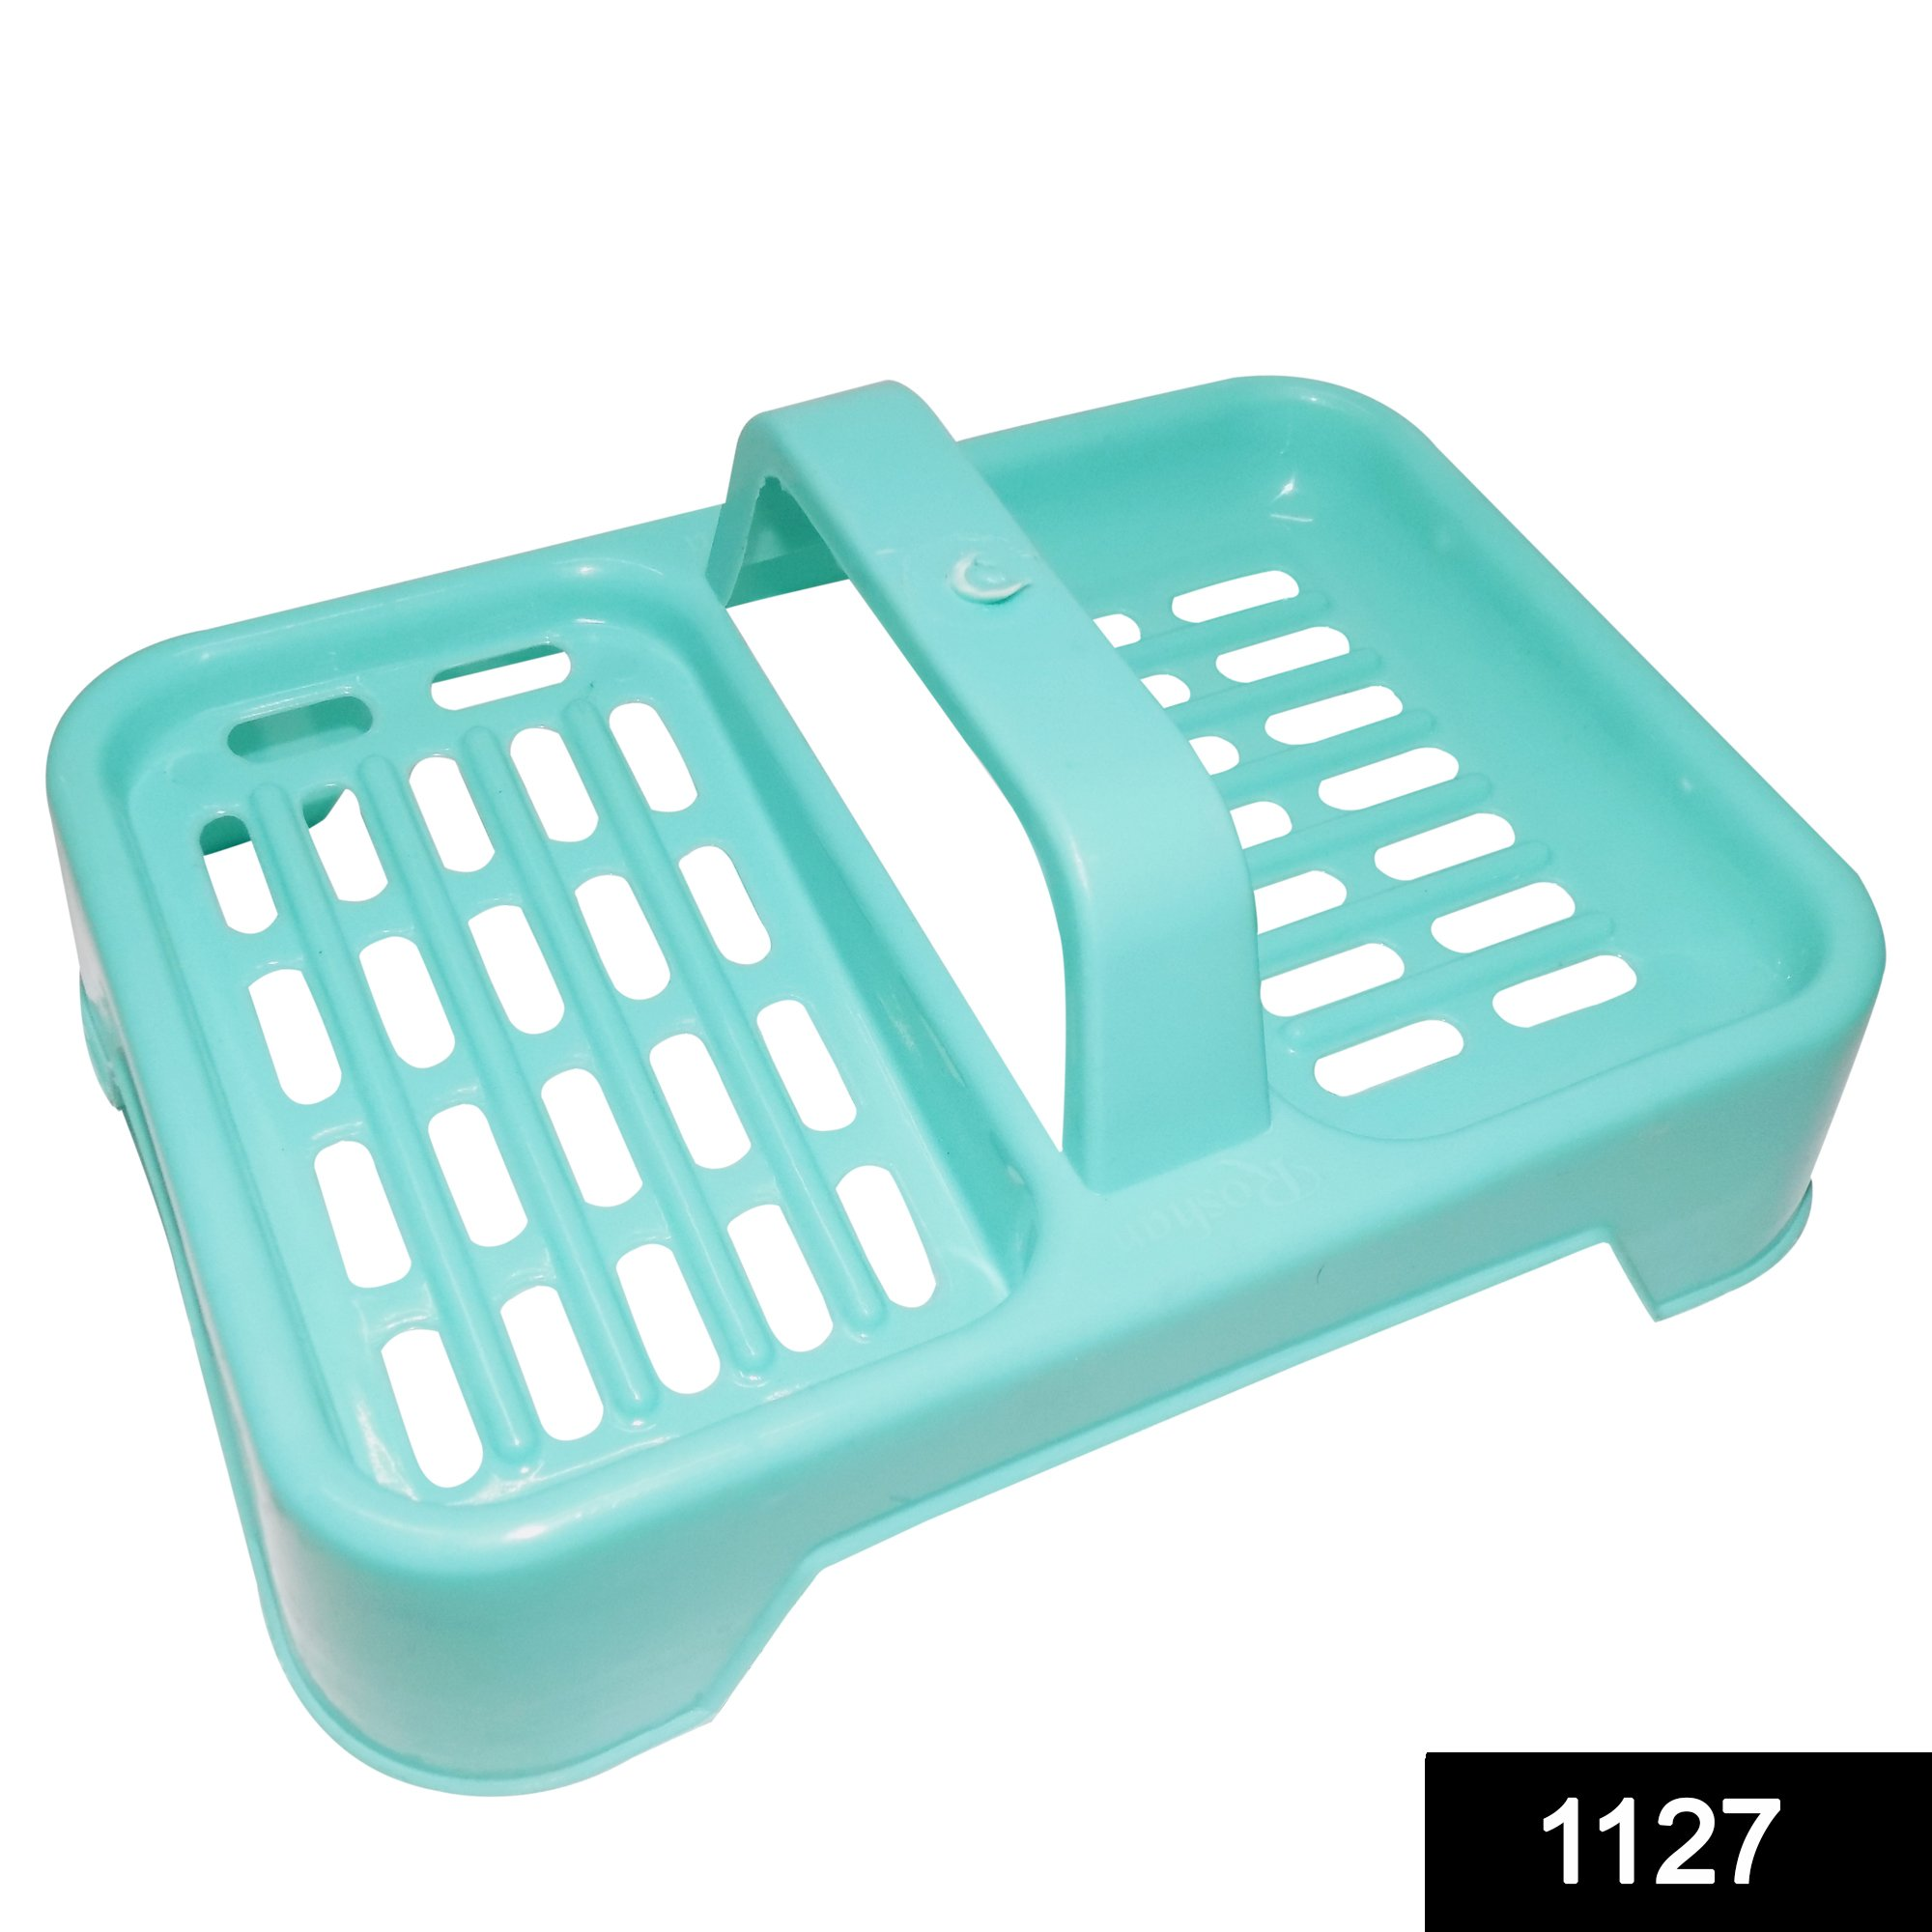 1127 2 in 1 Soap keeping Plastic Case for Bathroom use -